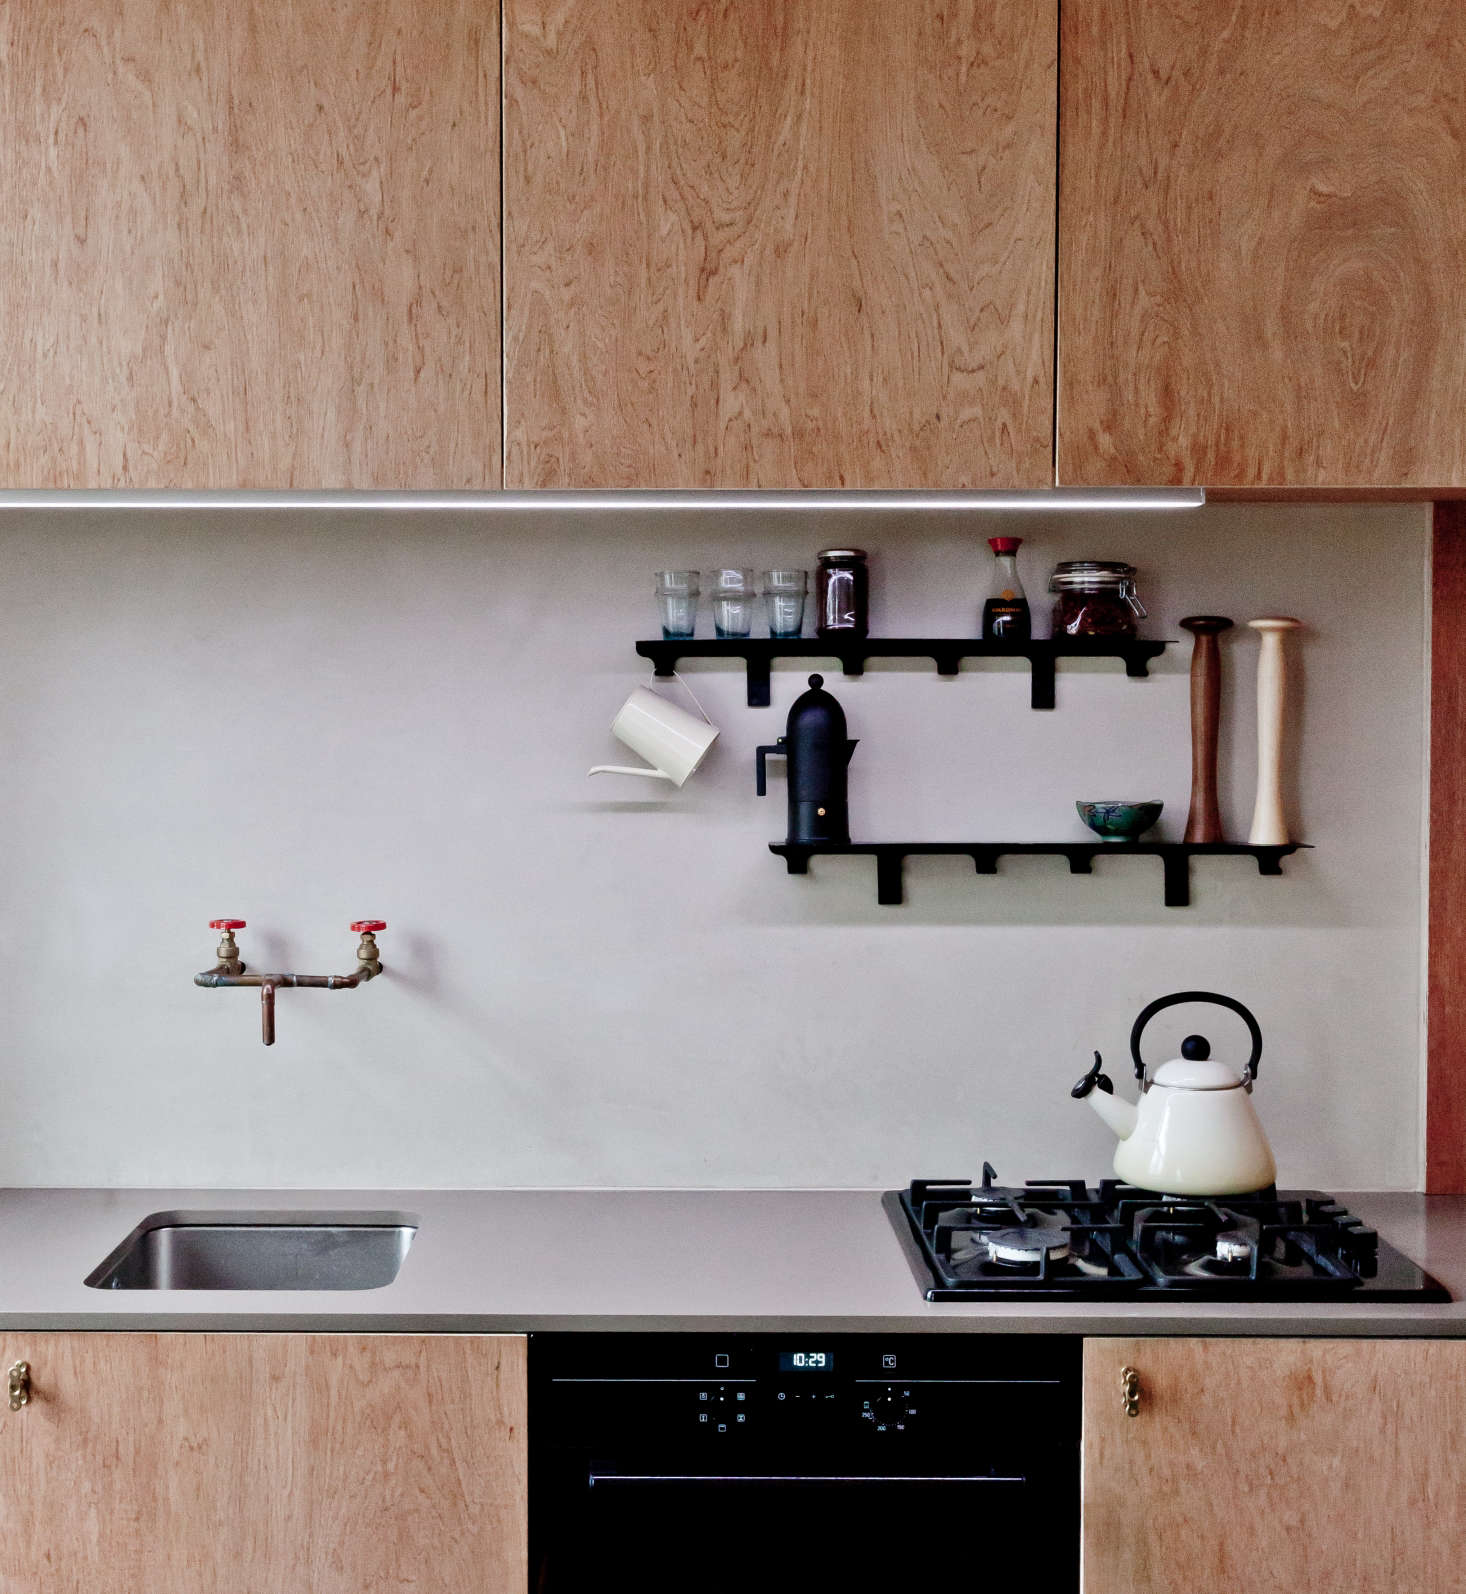 "When his client requested a simple, affordable kitchen in her petite North London flat, architect Simon Astridge chose a tadelakt backsplash, which ""has a depth and feel to it that matches the tones of the plywood and the worktop,"" he said. See the rest in Kitchen of the Week: An Artful, Honest Kitchen in North London. Photograph by Nicholas Worley, courtesy of Simon Astridge Architecture Workshop."